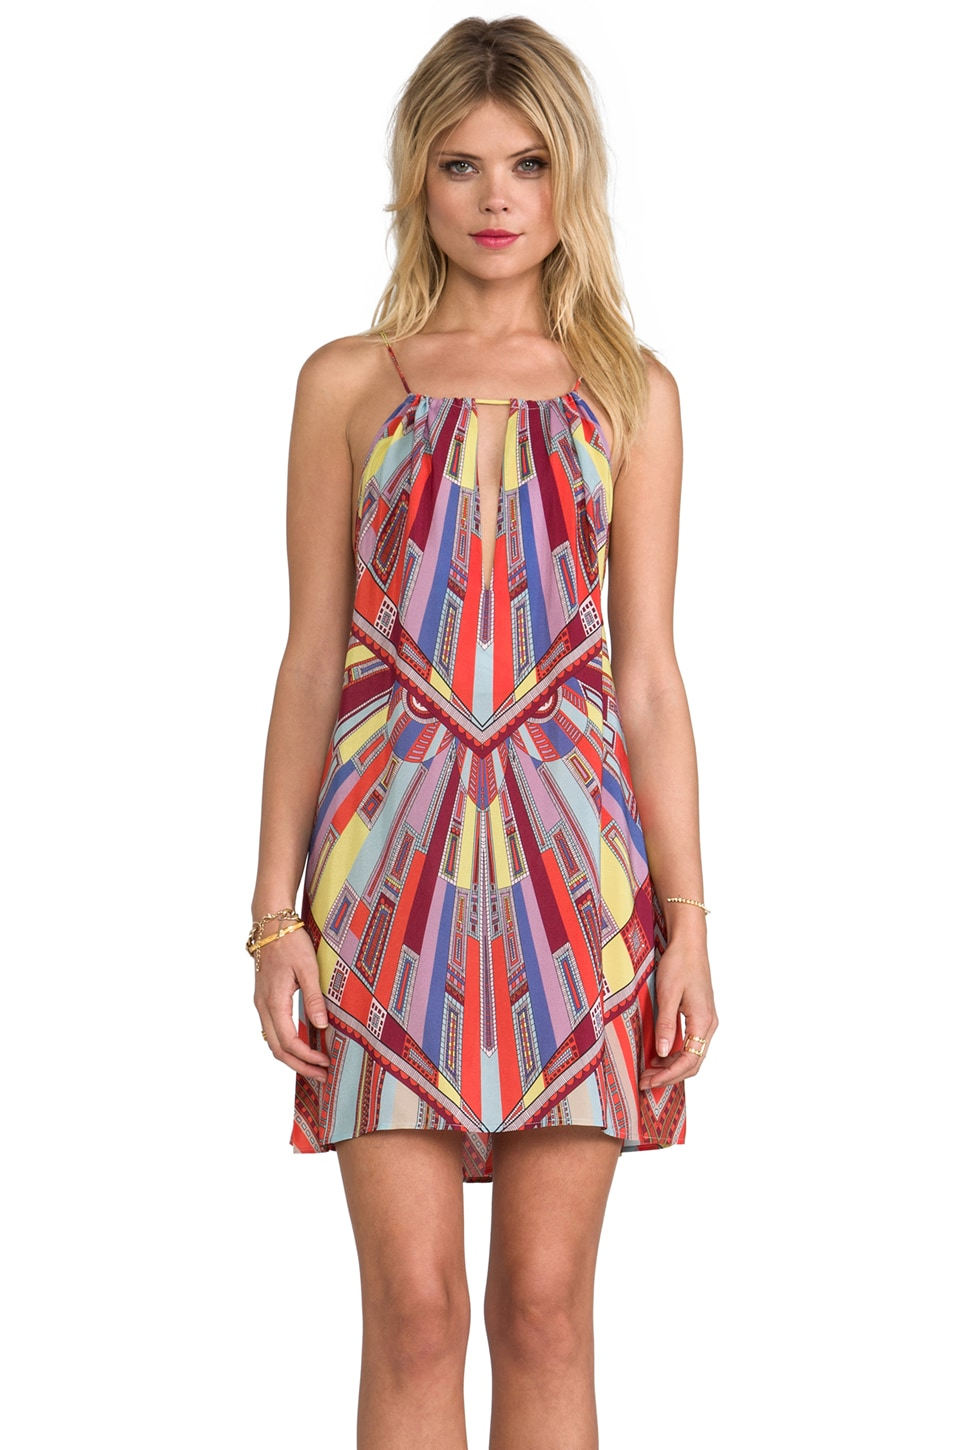 Alexis Martin Short Halter Dress in Art Deco